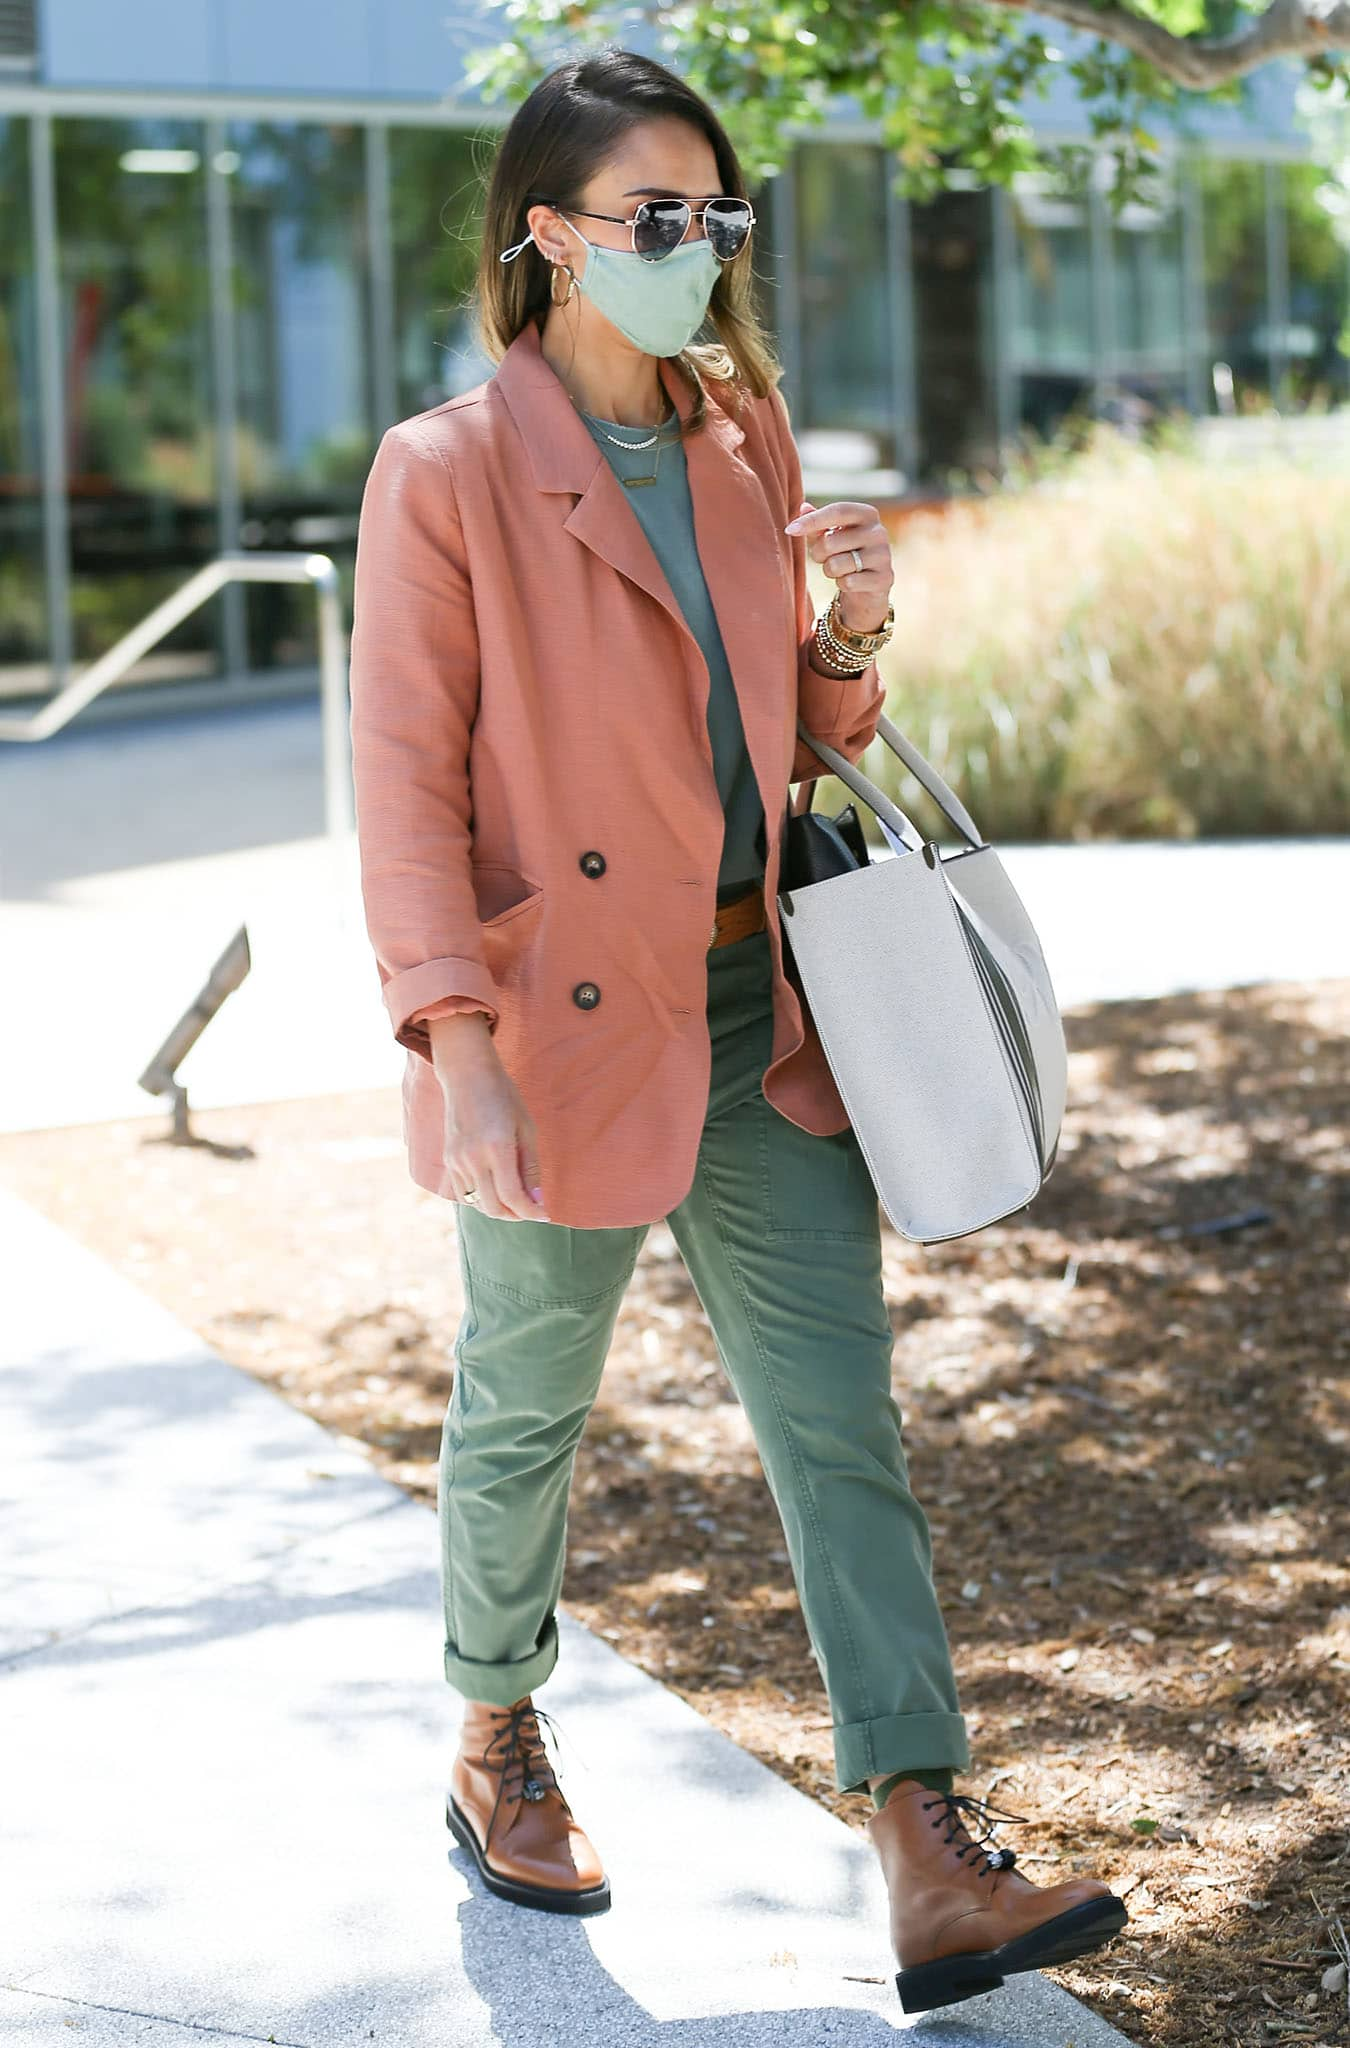 Jessica Alba defines spring-chic in sage green tee, green cargo pants, and peach blazer